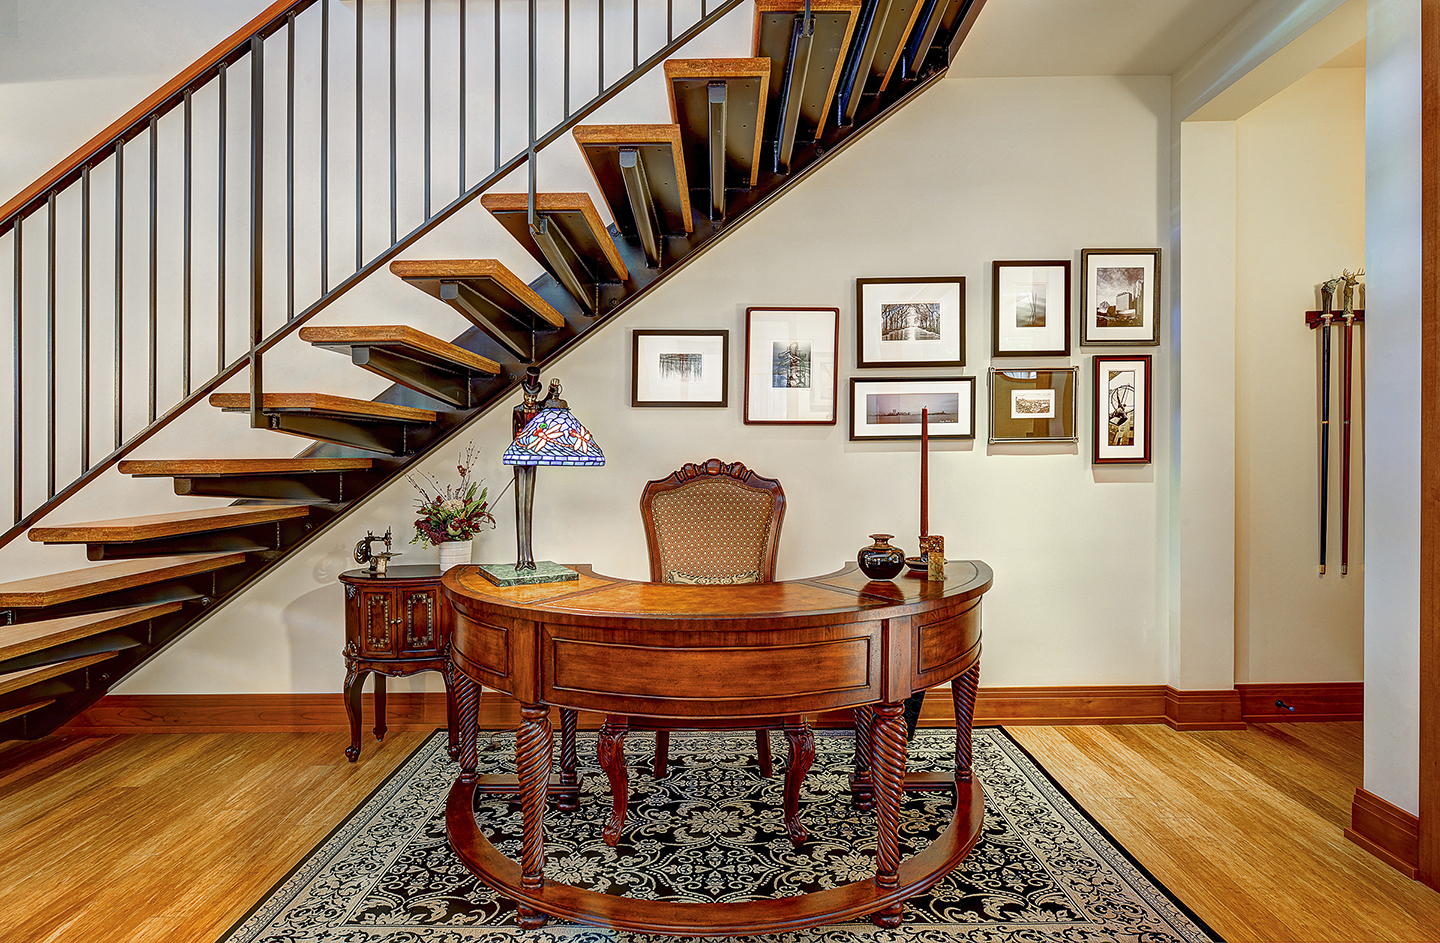 Rose Hill Living Room Stairs 3 EF-2.jpg